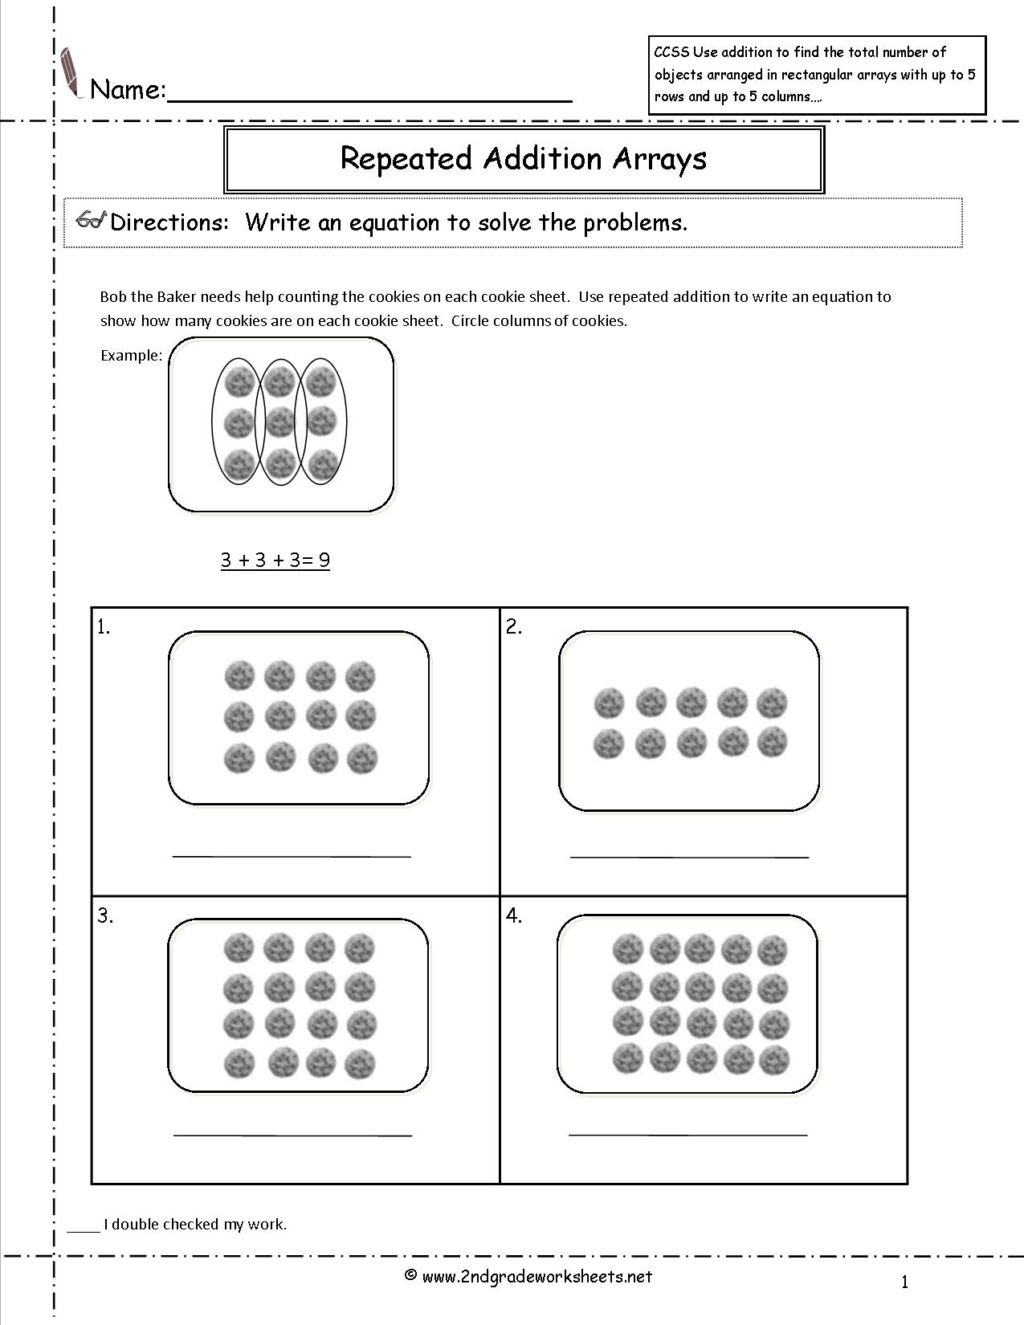 Multiplication Array Worksheets 3rd Grade Math Worksheet Mone Math Worksheets 3rd Grade Awesome